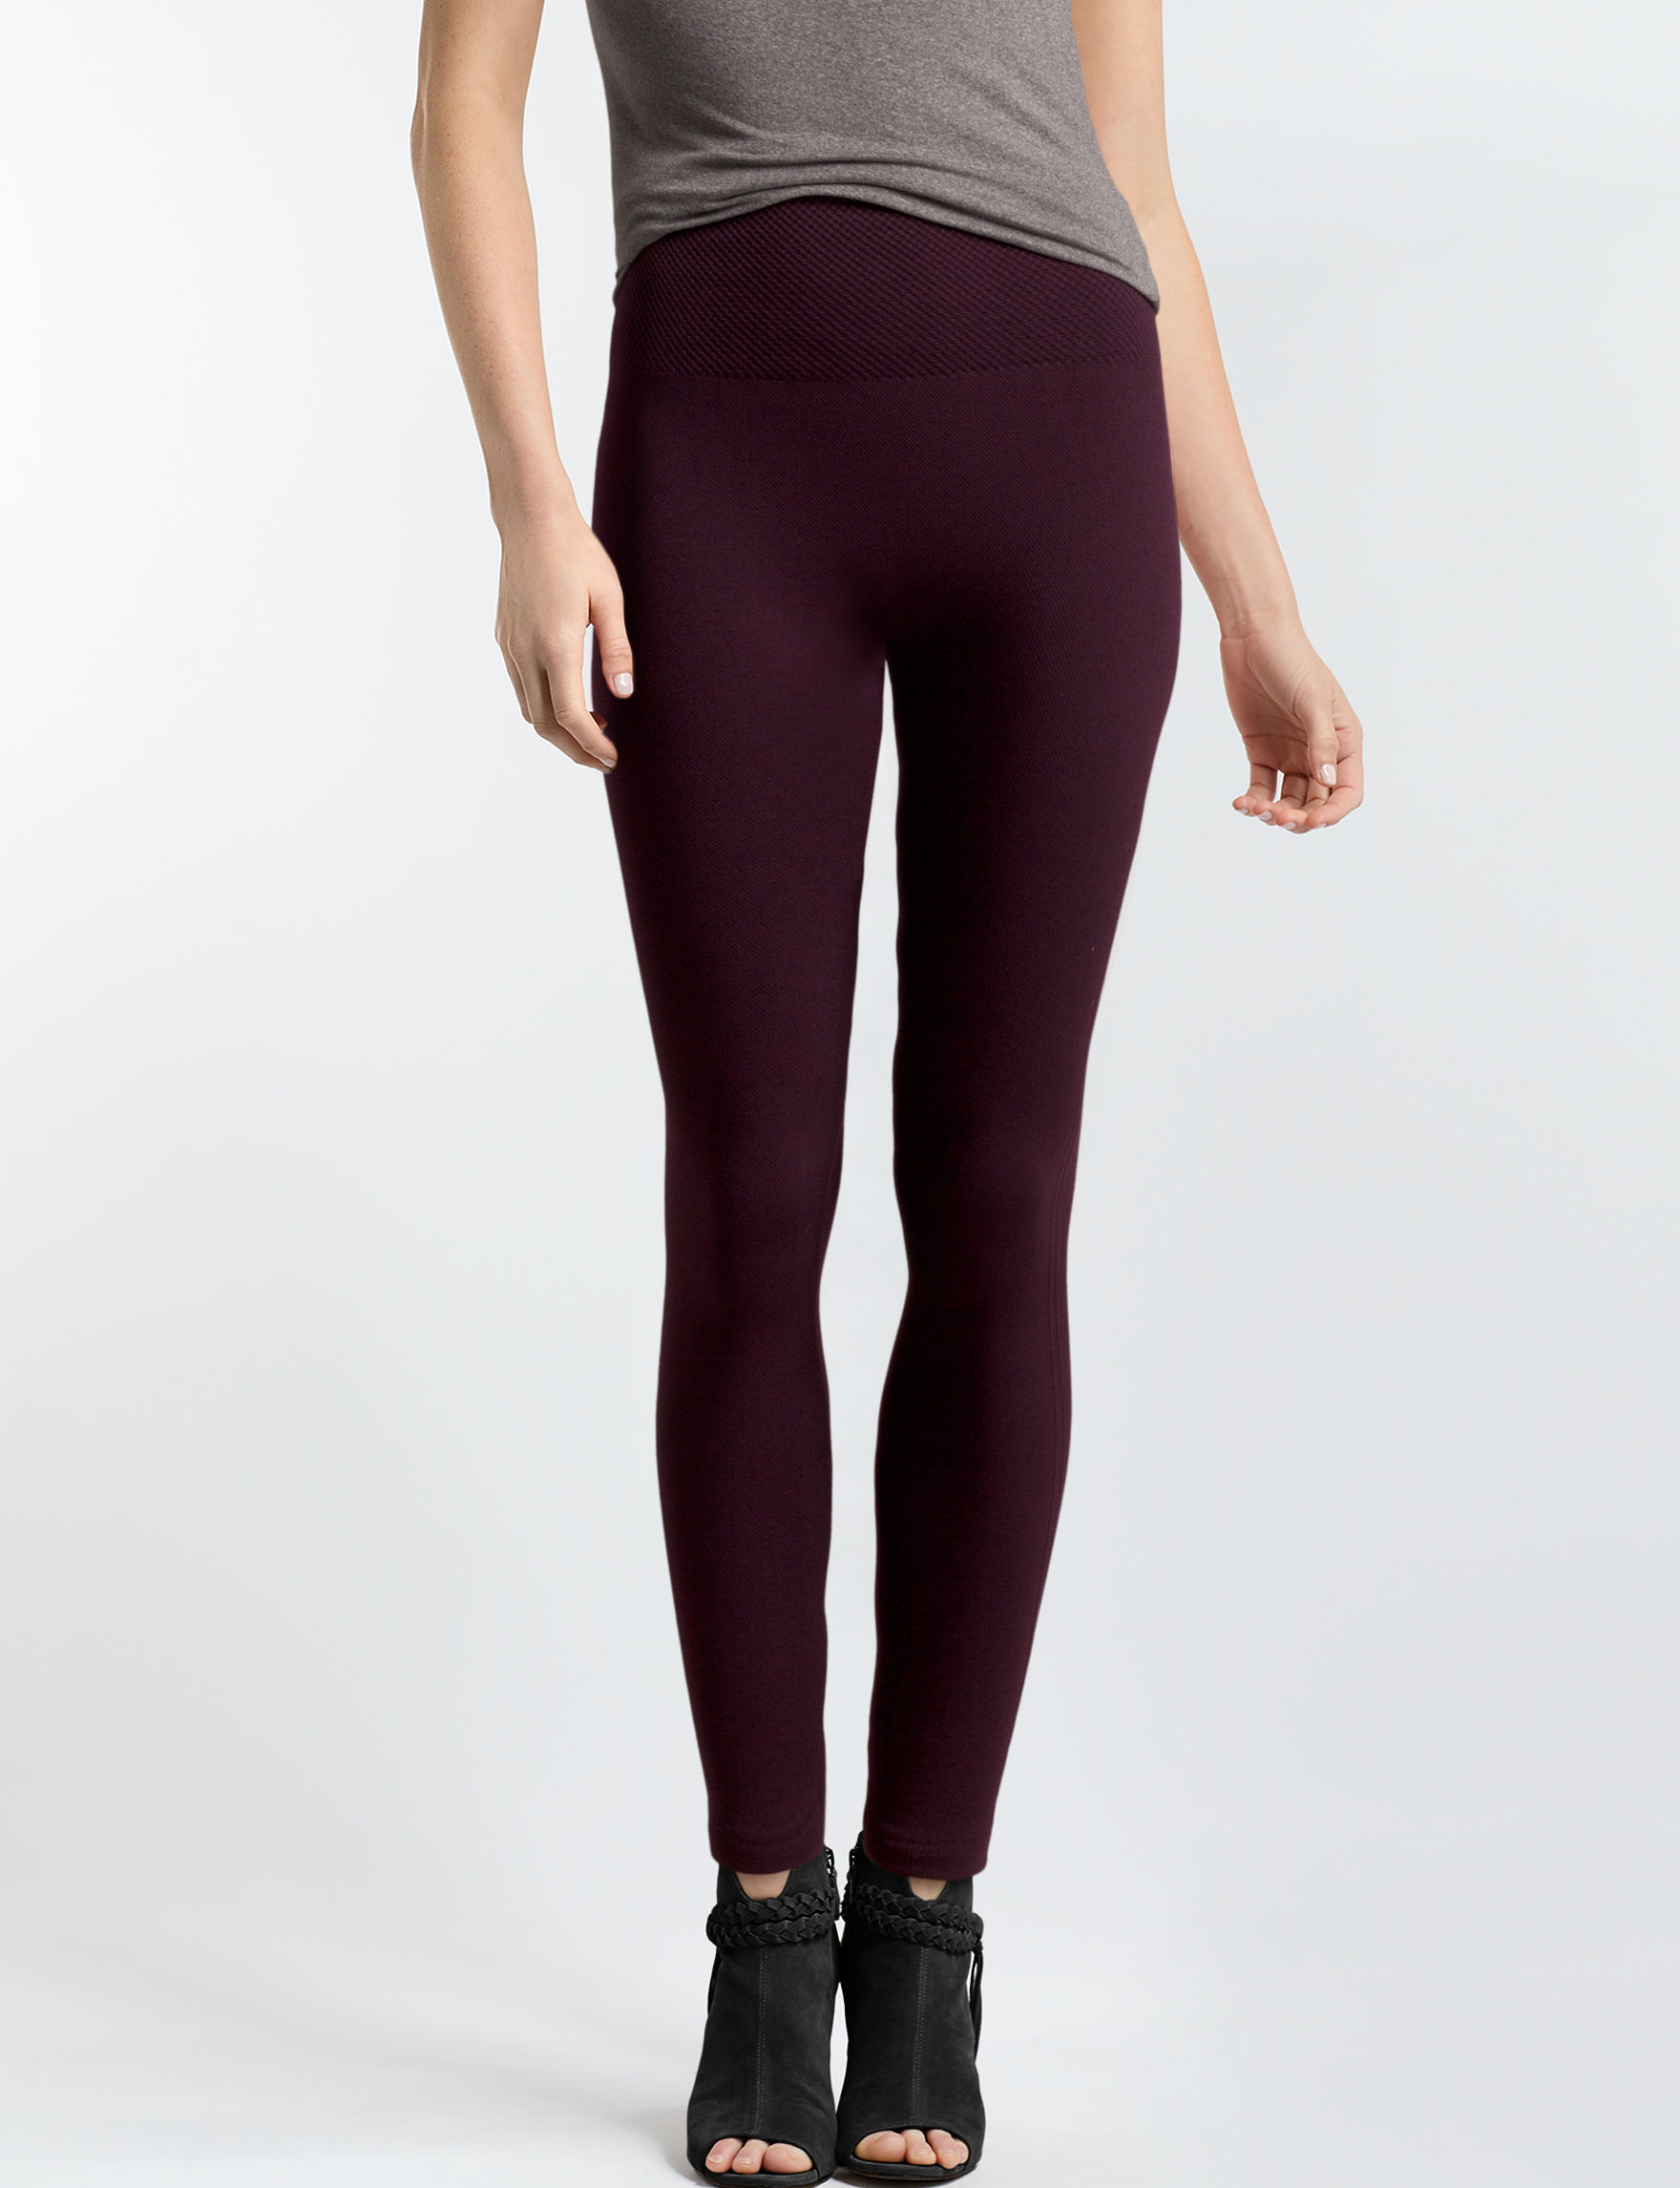 One 5 One Plum Leggings